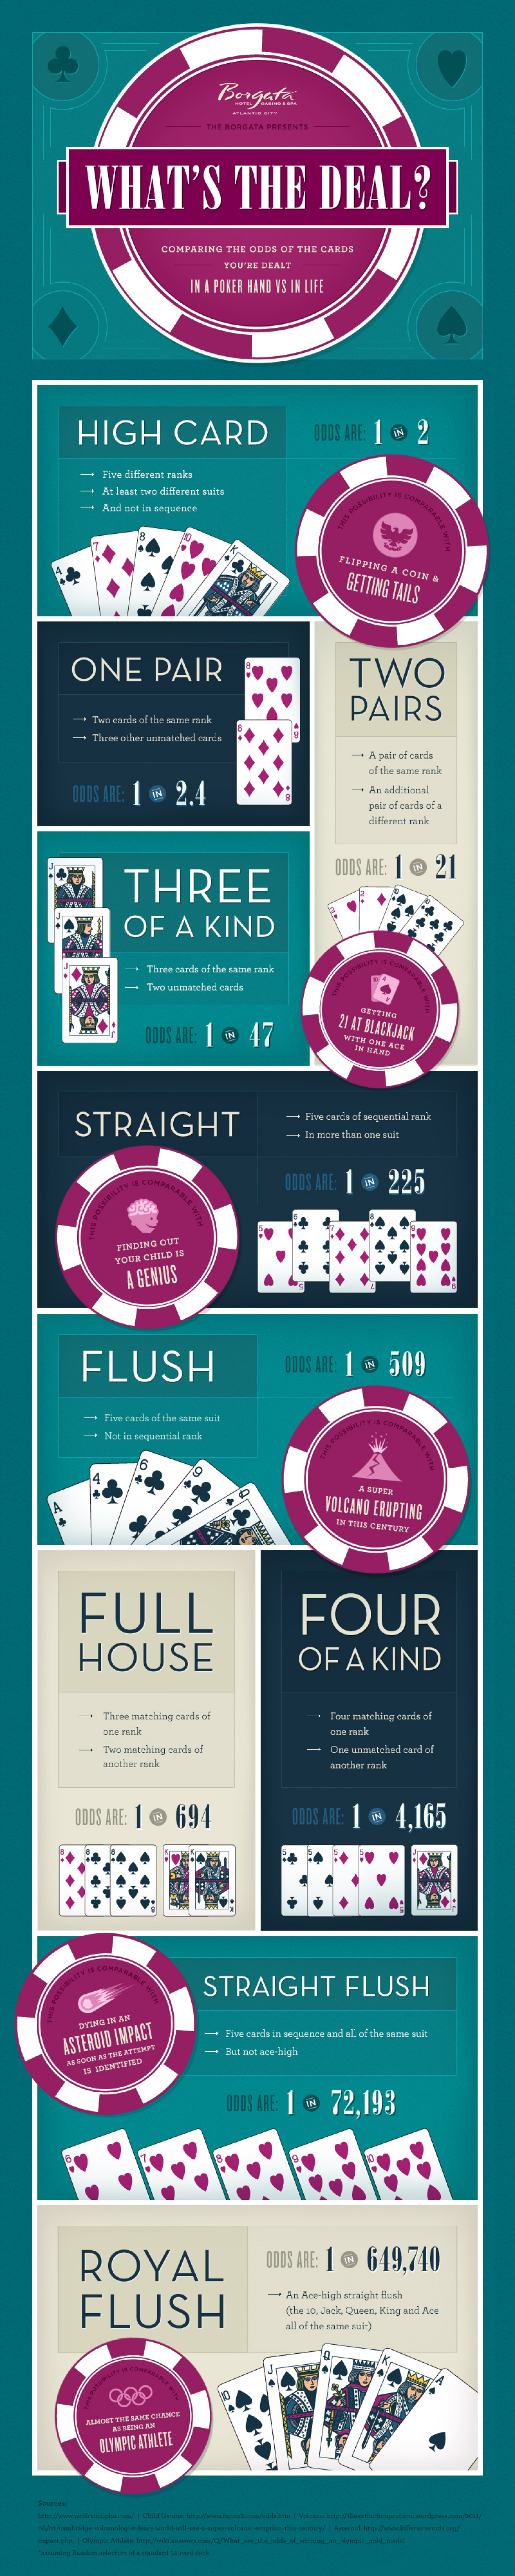 The Odds Of The Card You're Dealt In A Poker Hand Vs. Life Infographic